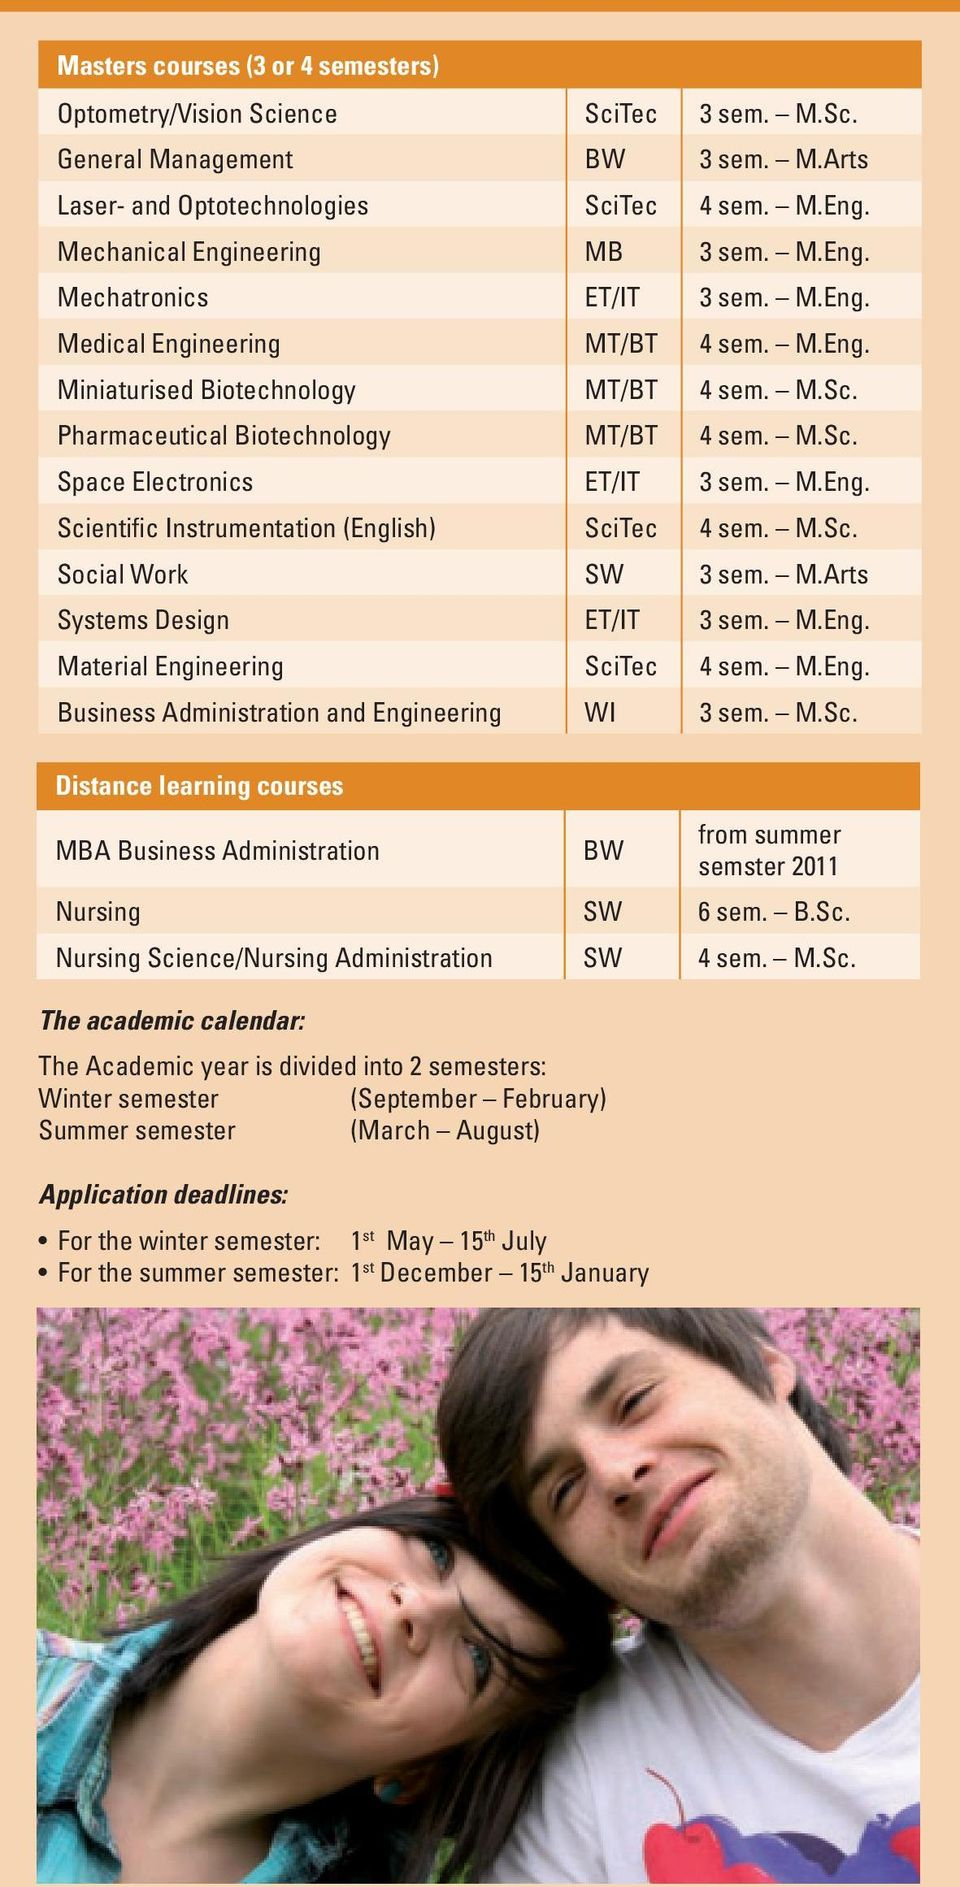 M.Sc. Social Work SW 3 sem. M.Arts Systems Design ET/IT 3 sem. M.Eng. Material Engineering SciTec 4 sem. M.Eng. Business Administration and Engineering WI 3 sem. M.Sc. Distance learning courses MBA Business Administration BW from summer semster 2011 Nursing SW 6 sem.